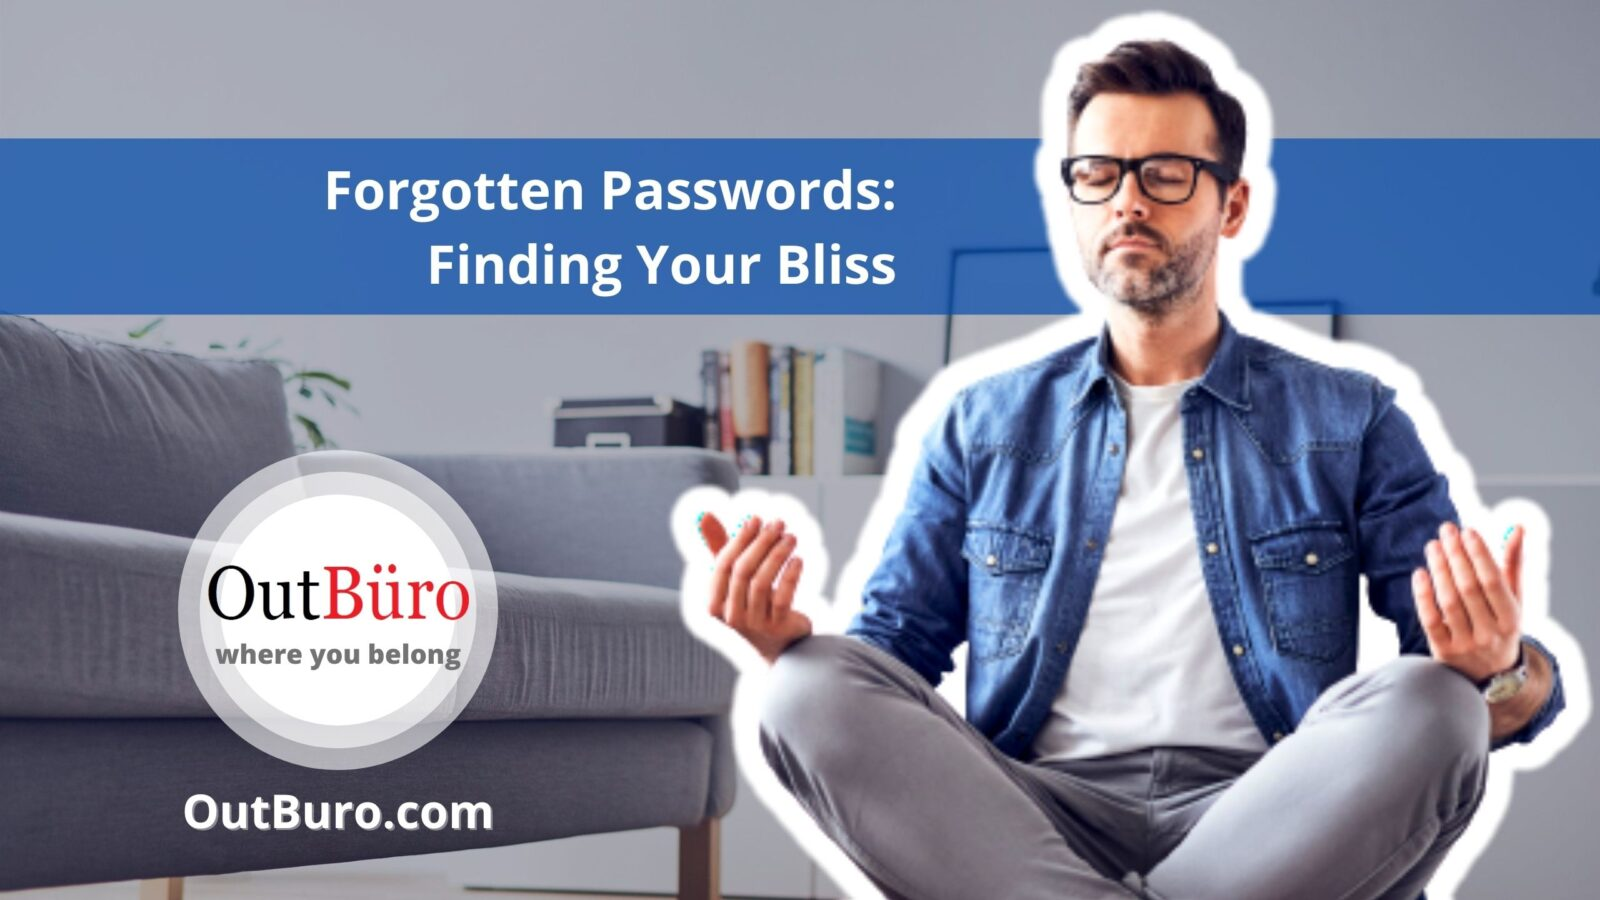 OutBuro Forgotten Passwords Finding Your Bliss lgbtq professionals gay entrepreneurs lesbian startups out queer business owners transgender community